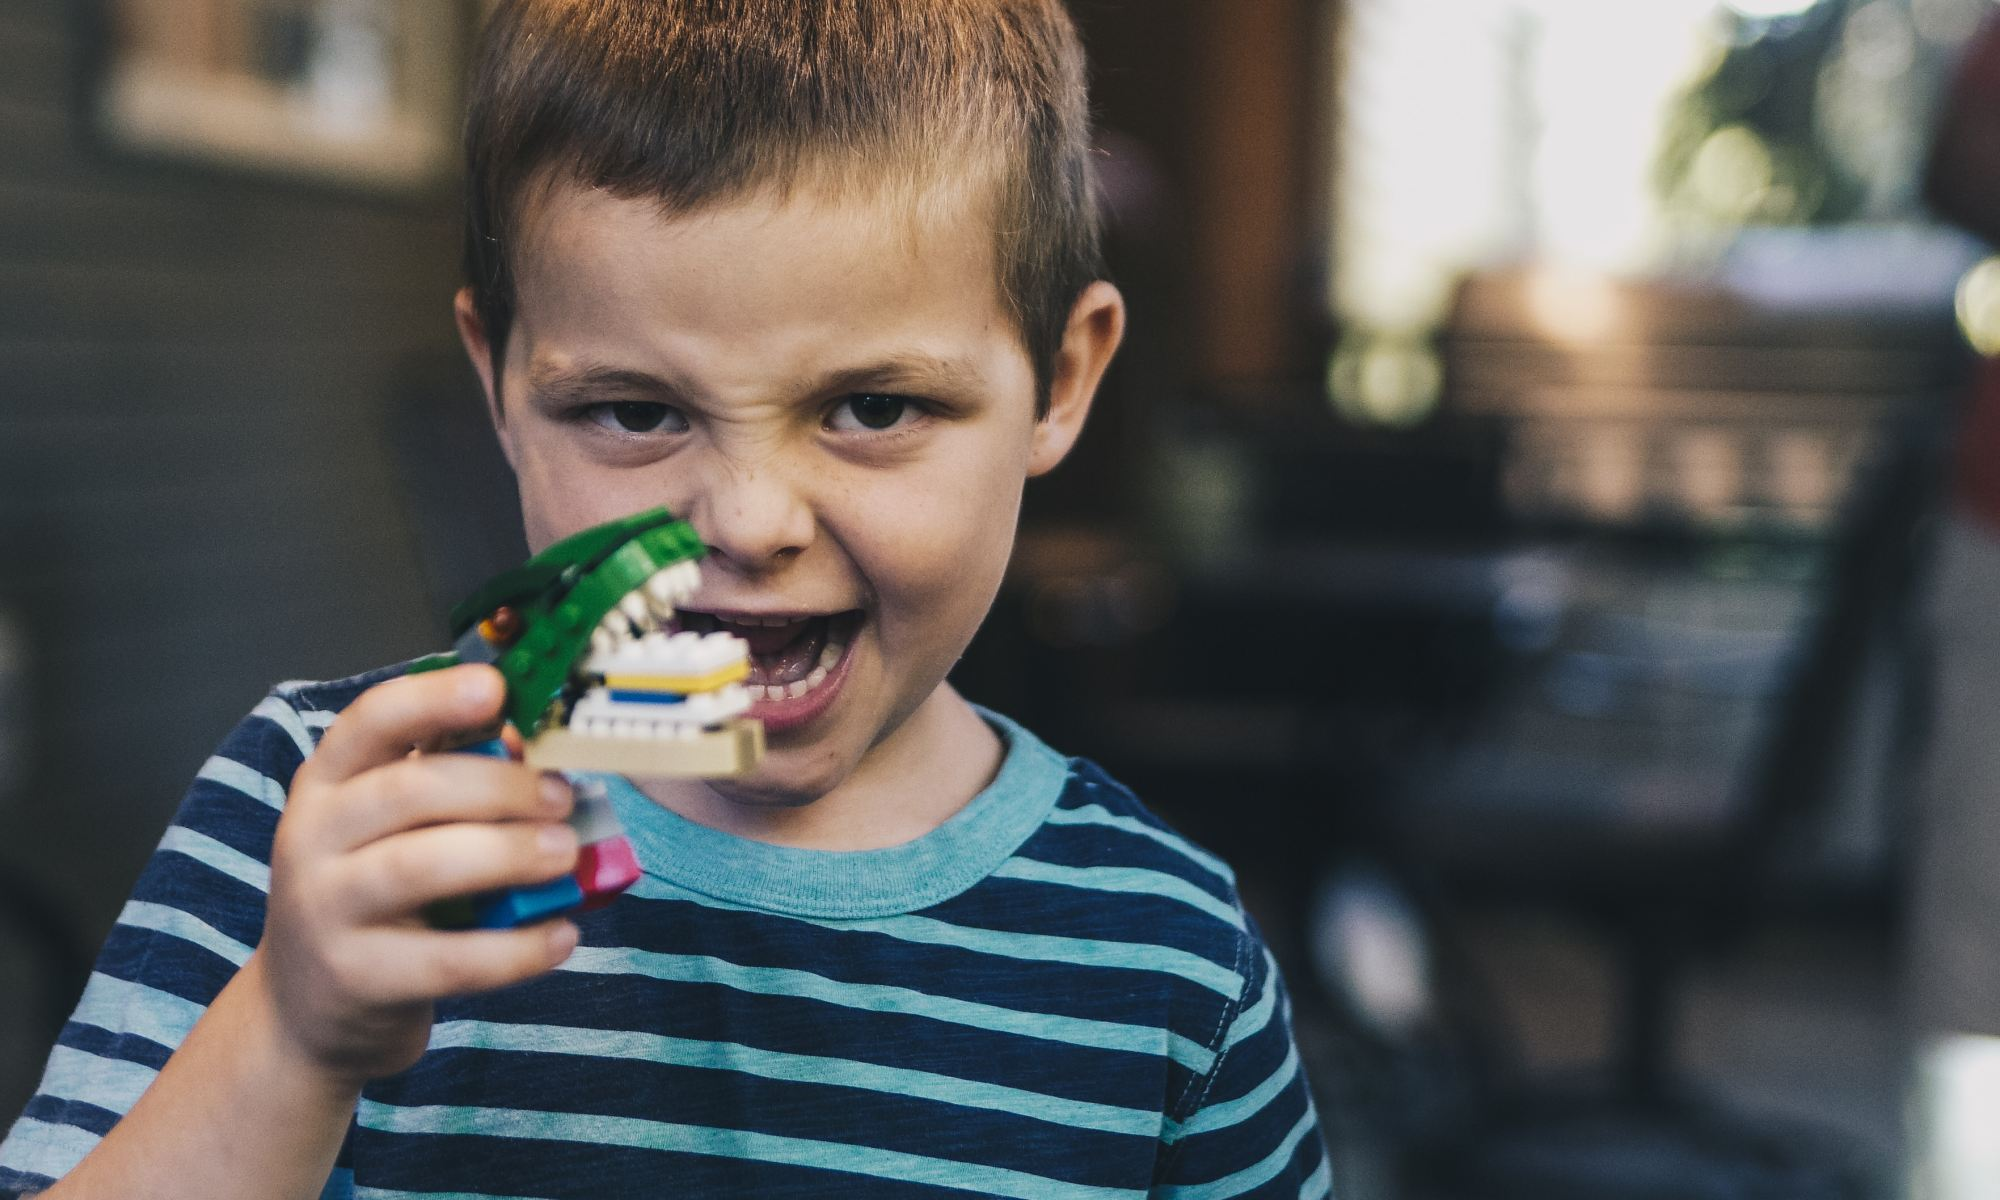 Boy with social communication disorder holding toy